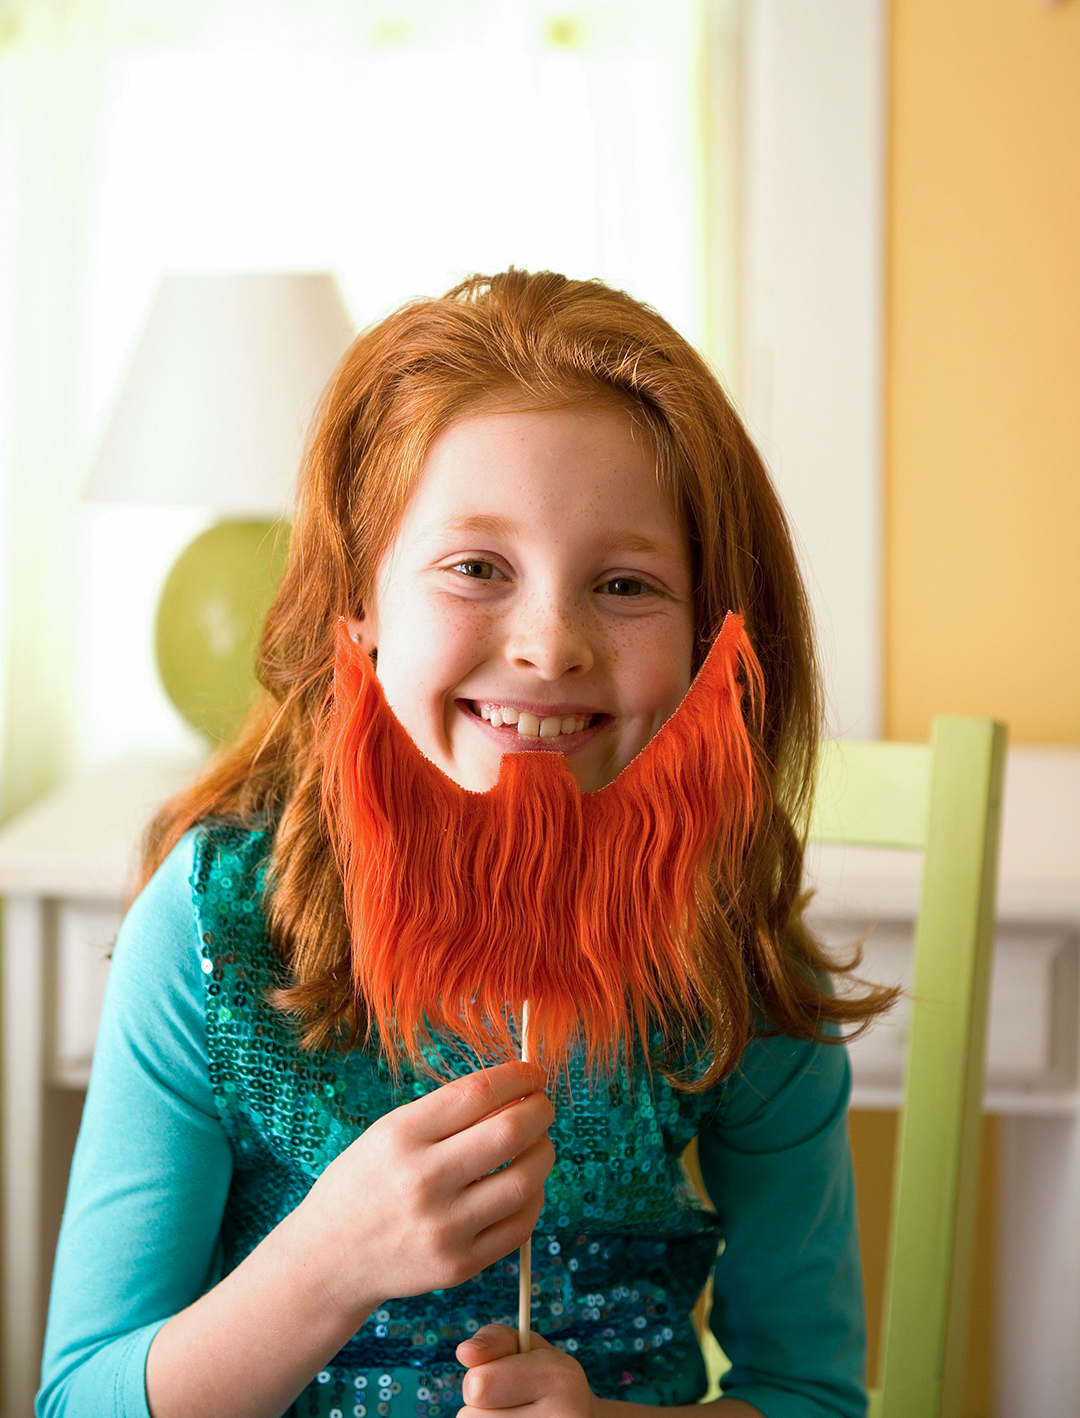 young smiling girl holding diy beard on stick